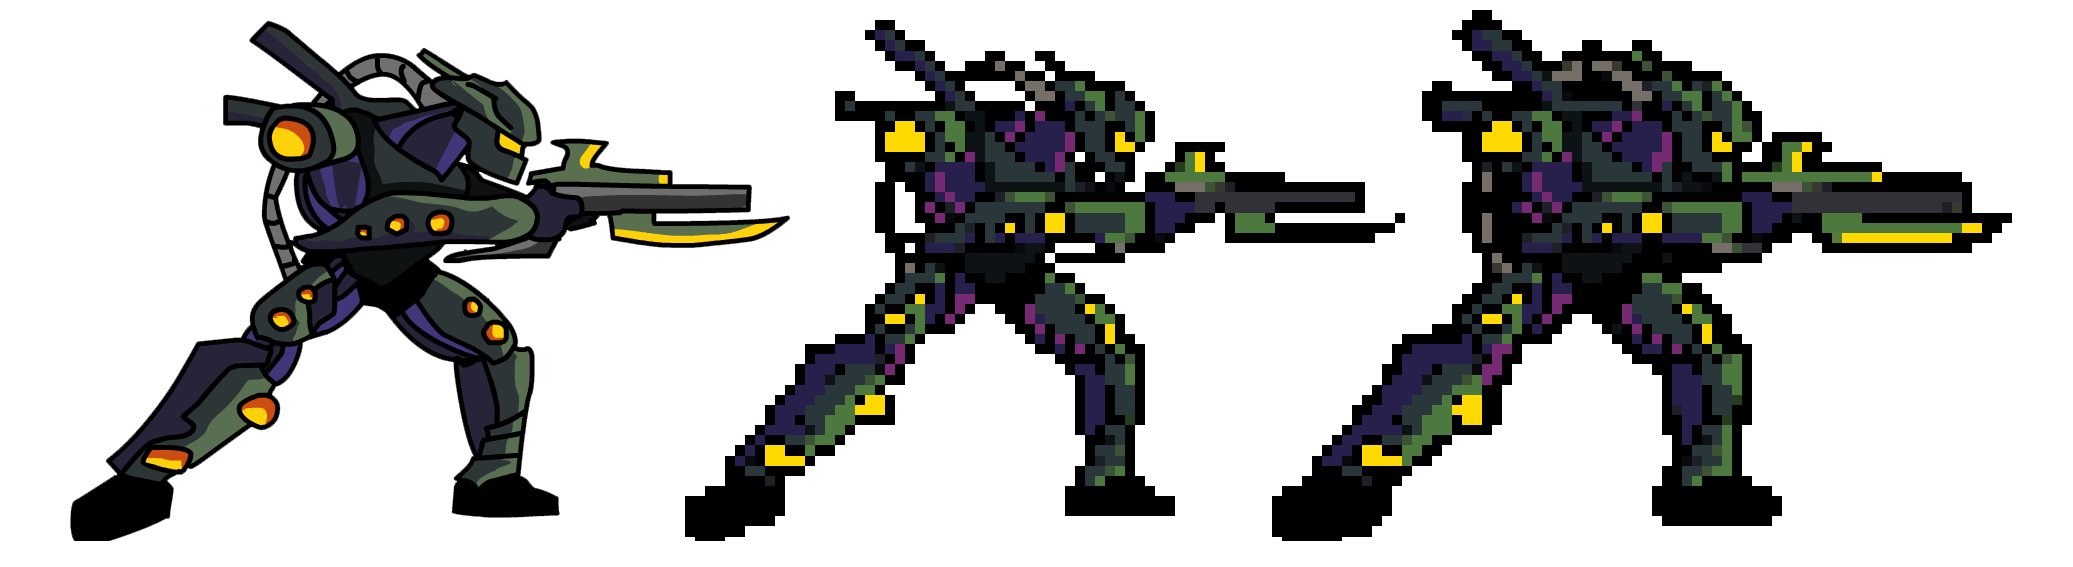 Pixels drawing figure